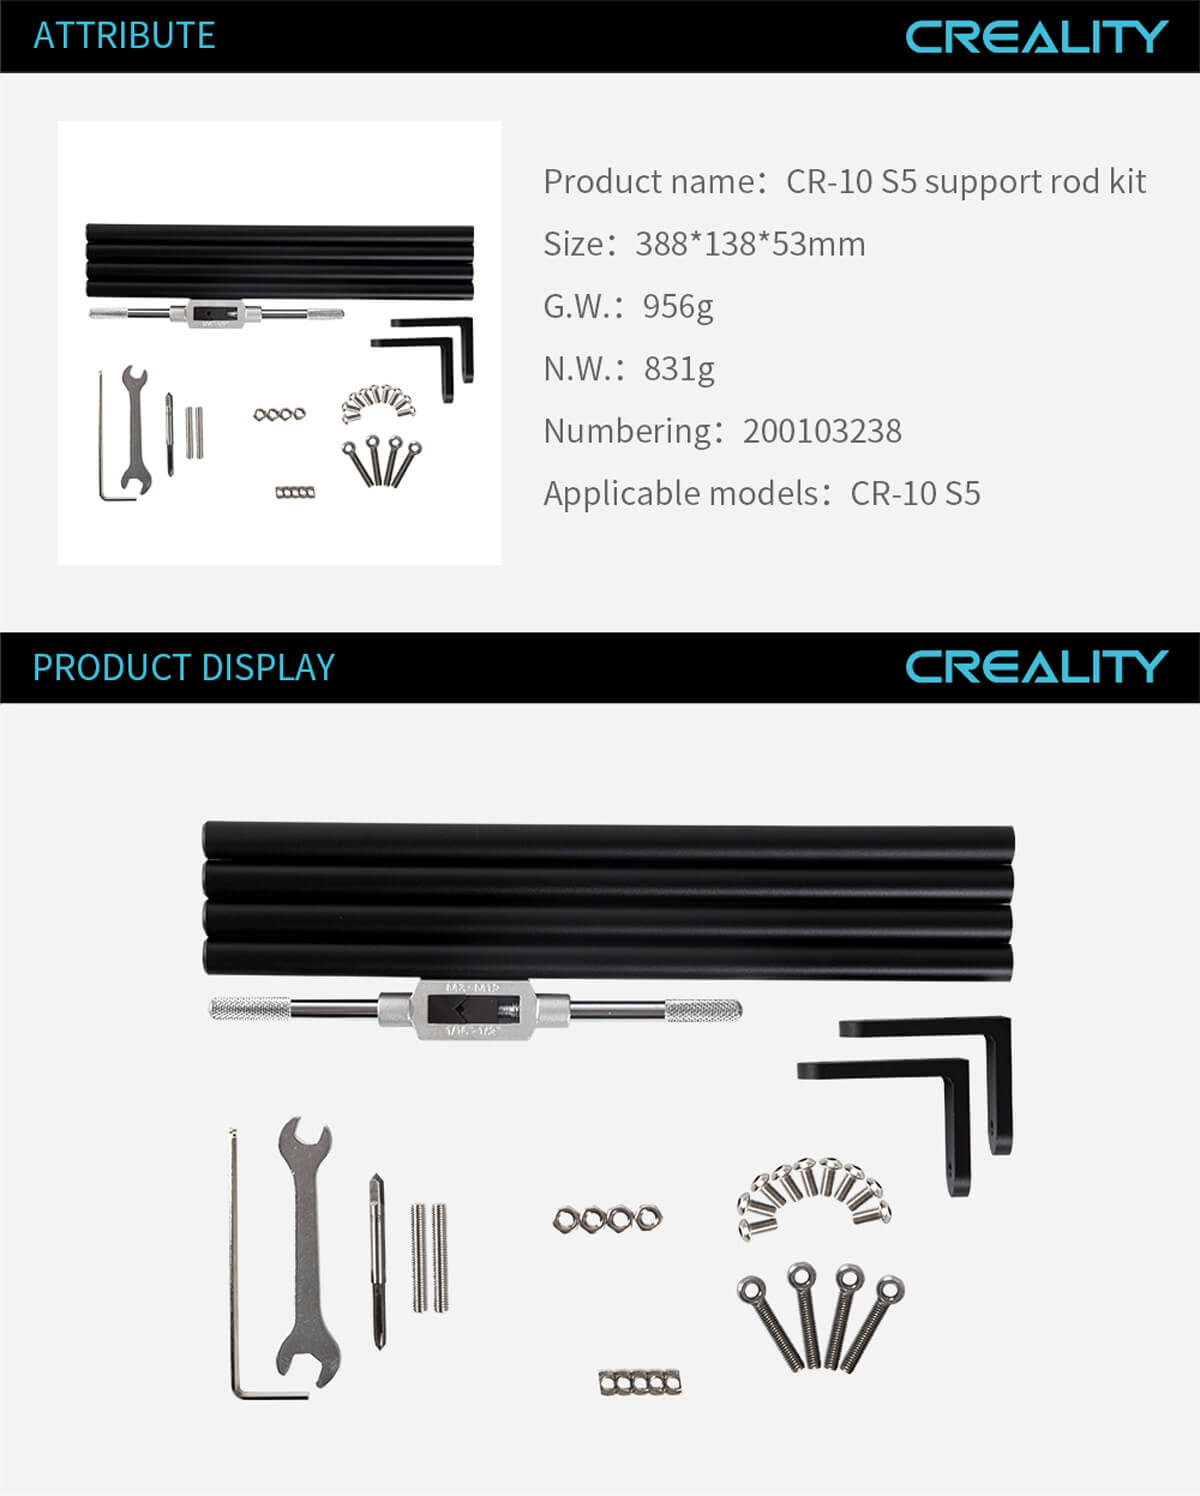 creality-3d-printer-CR-10-S5-Support-Rod-Kit-11